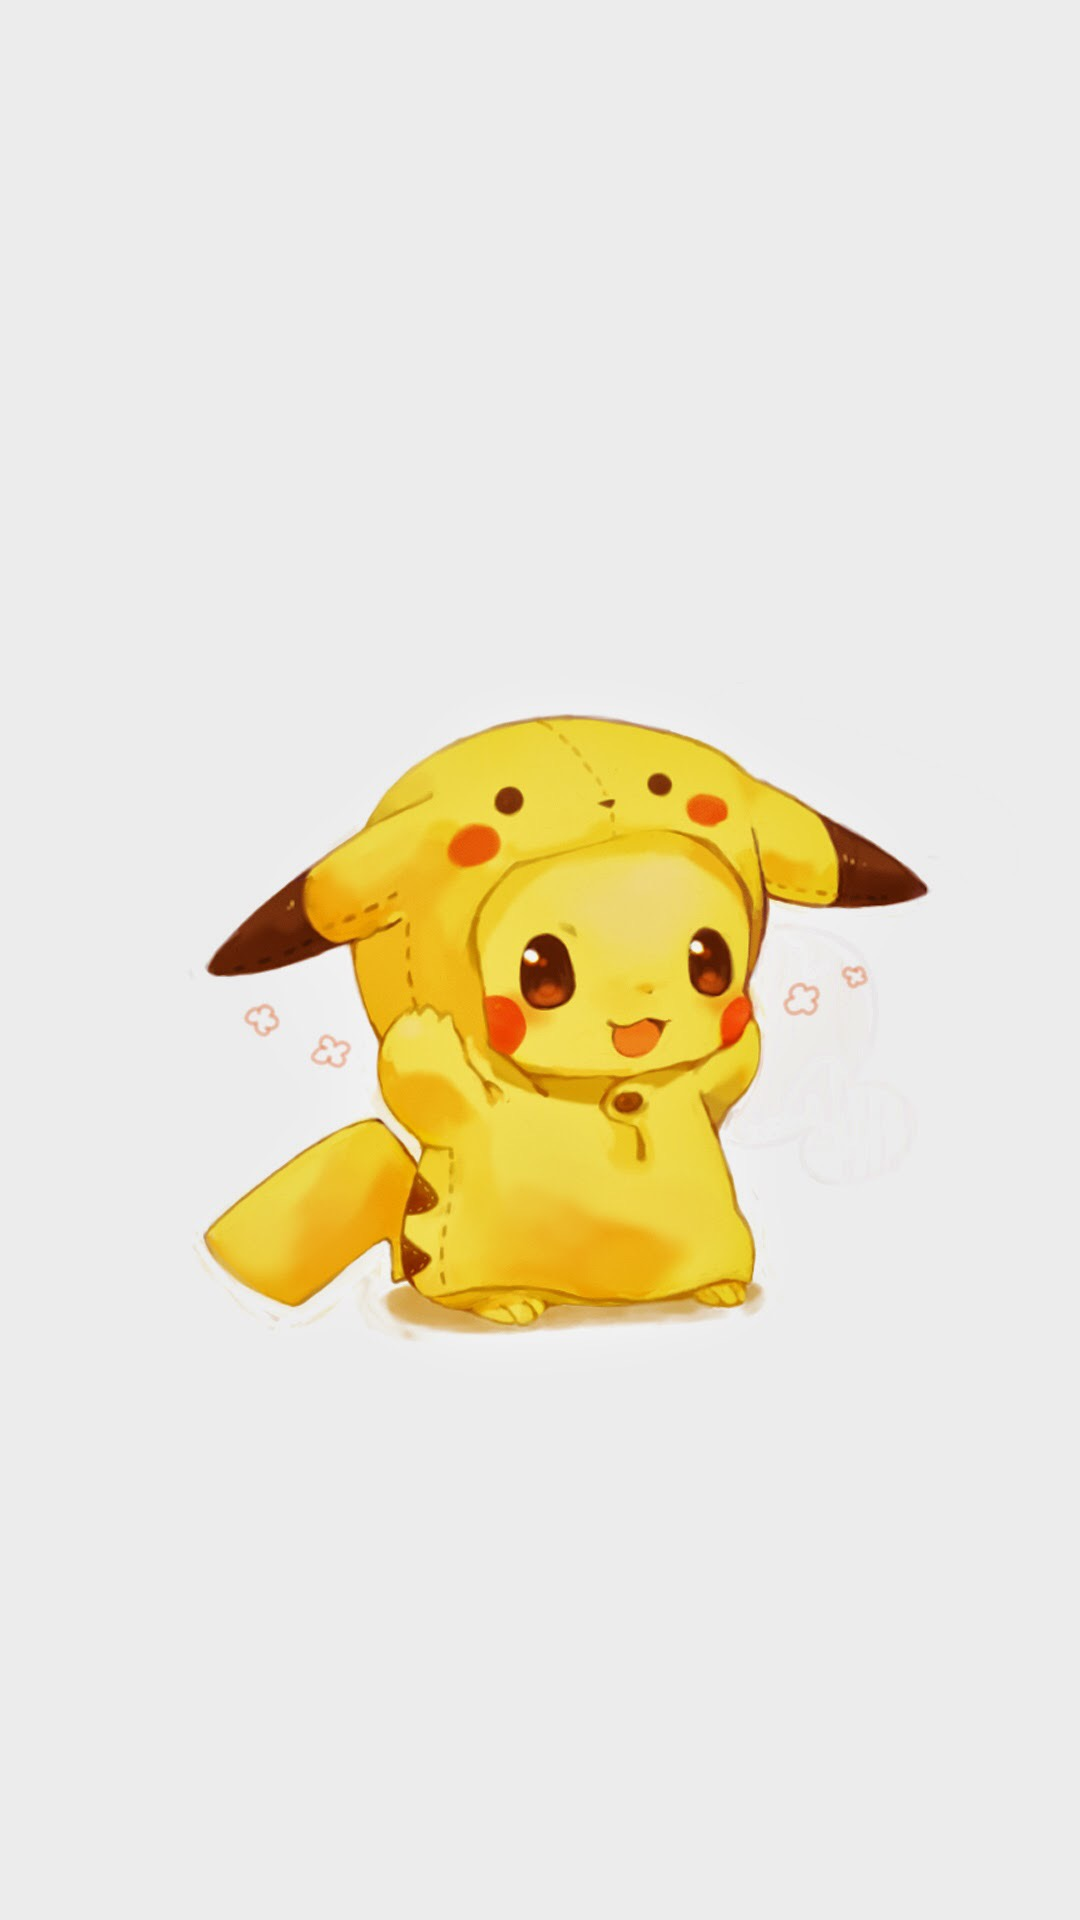 Tap-image-for-more-funny-cute-Pikachu-Pikachu-mobile-for-iPhone-s-c-wallpaper-wp34011221